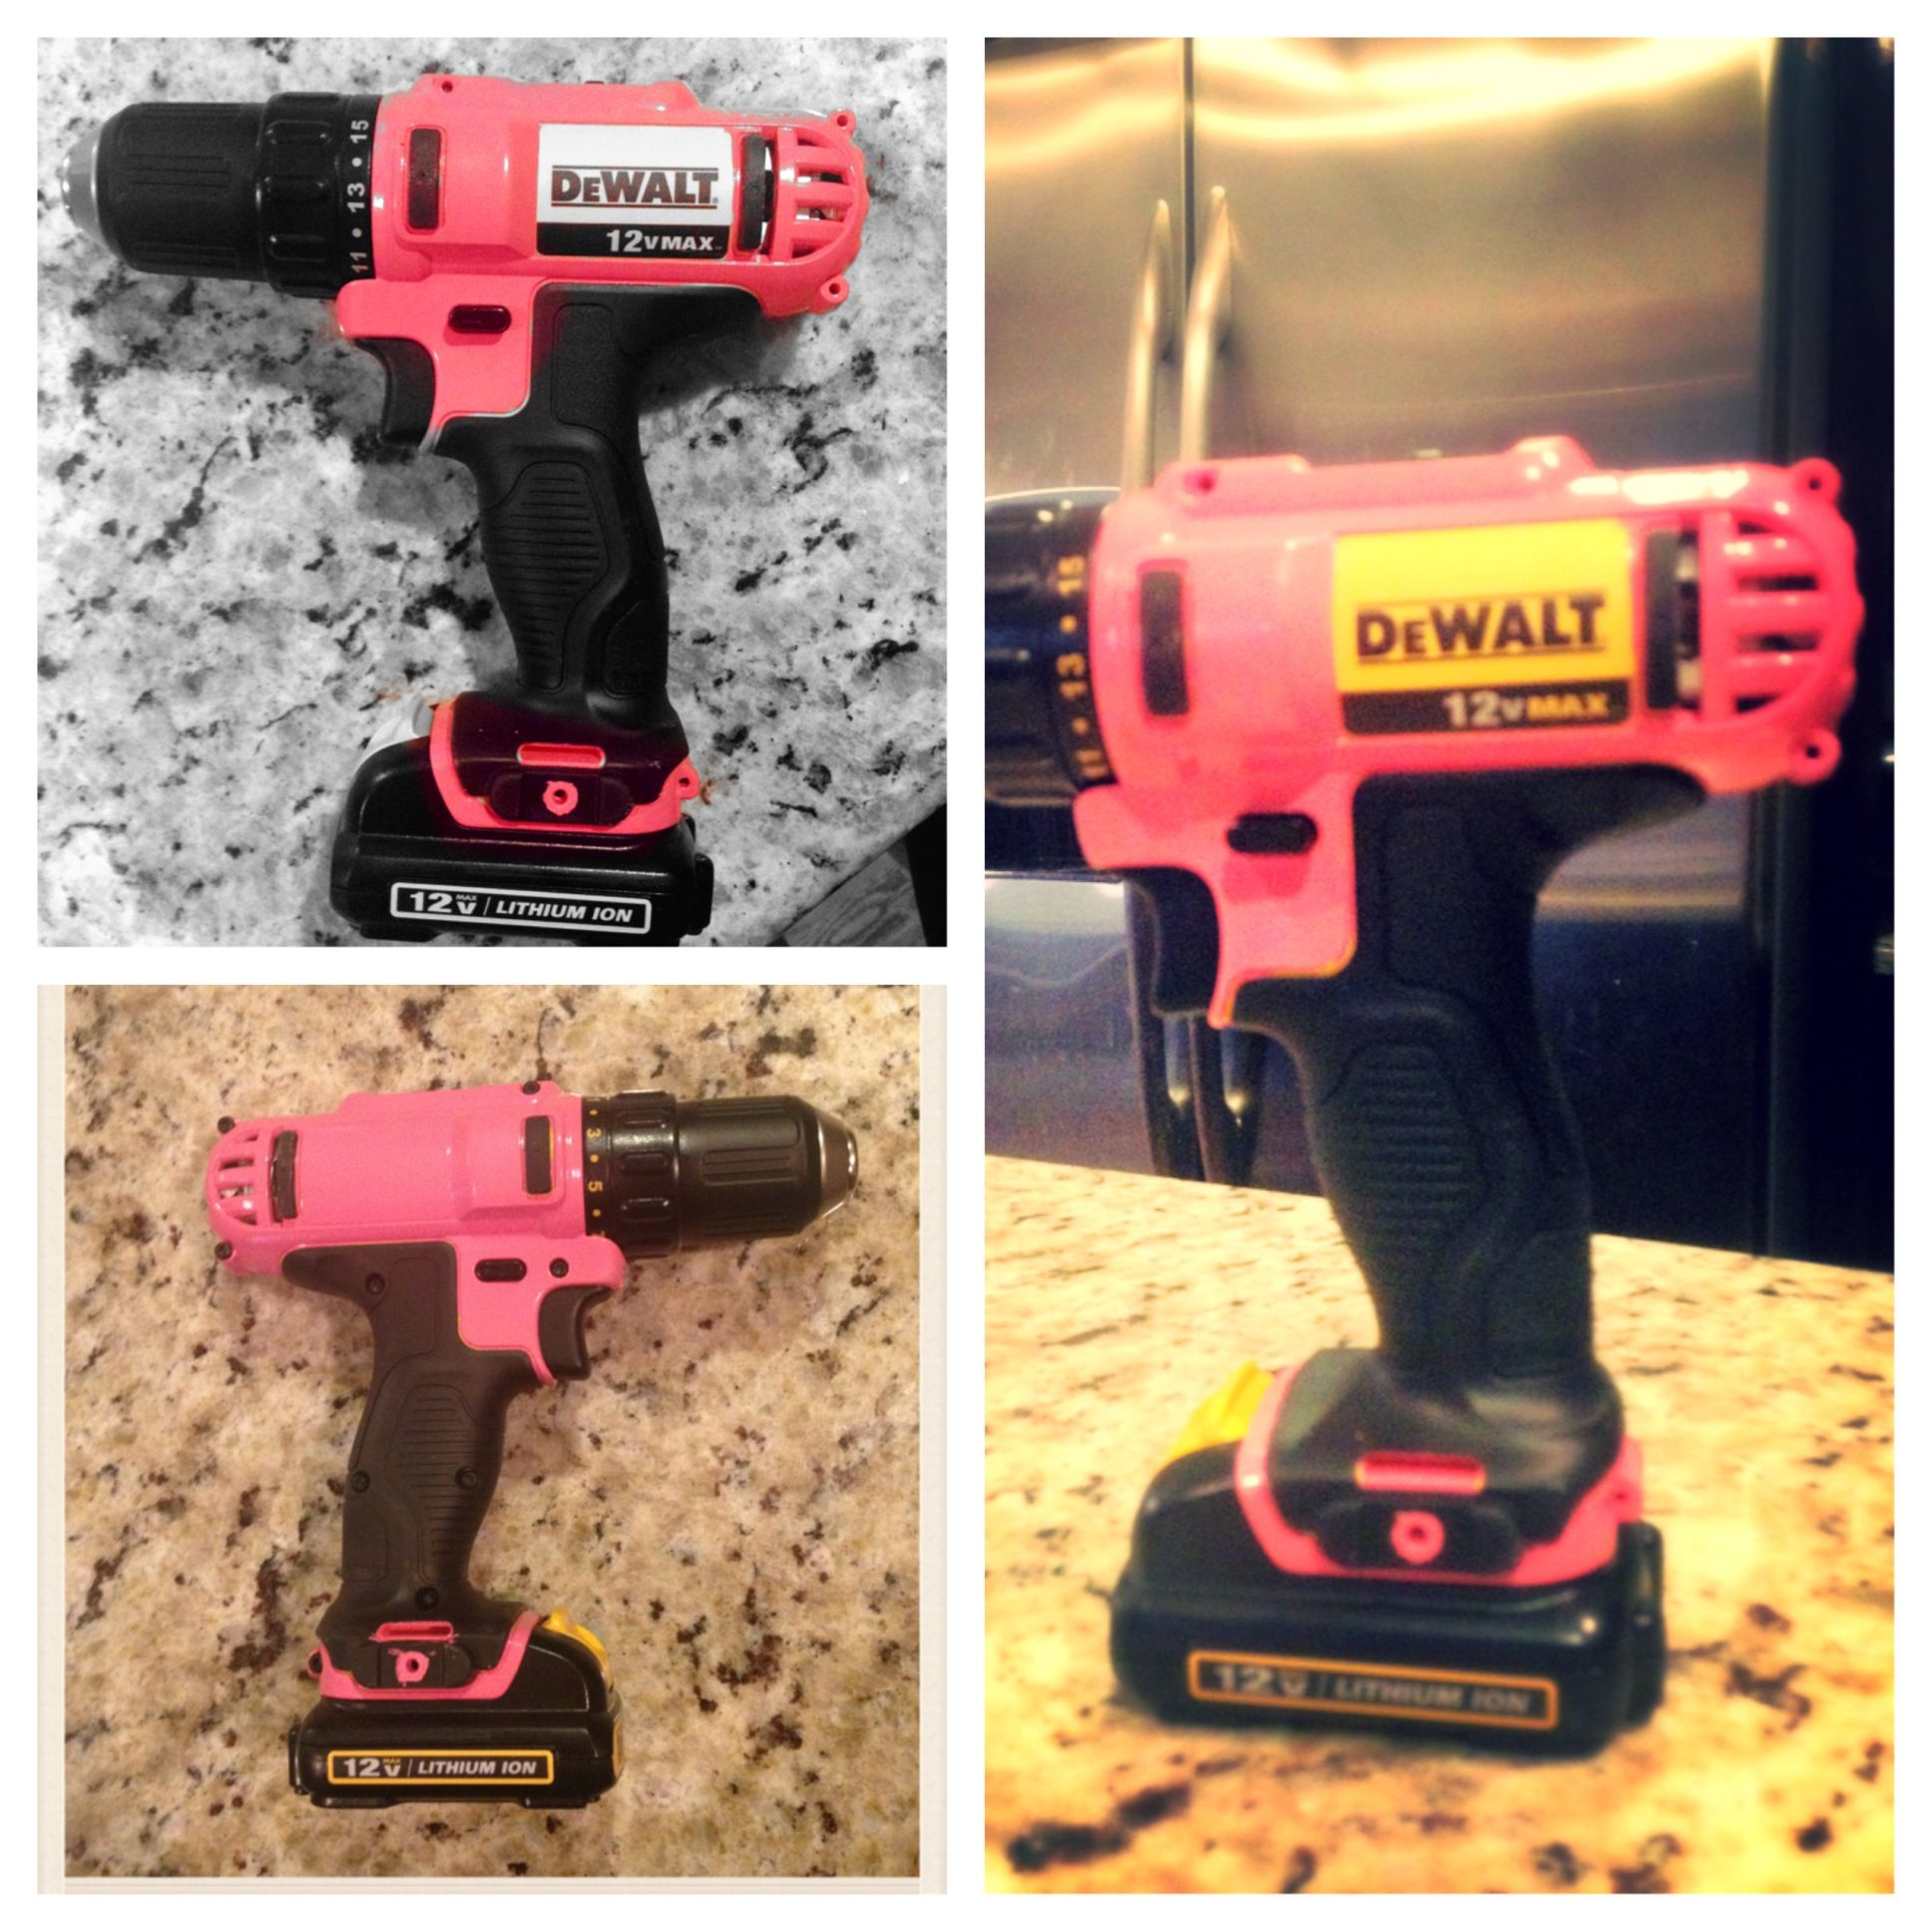 c8169b1956a1f5 I was tired of asking Dewalt for a women's line of power tools (asked  several